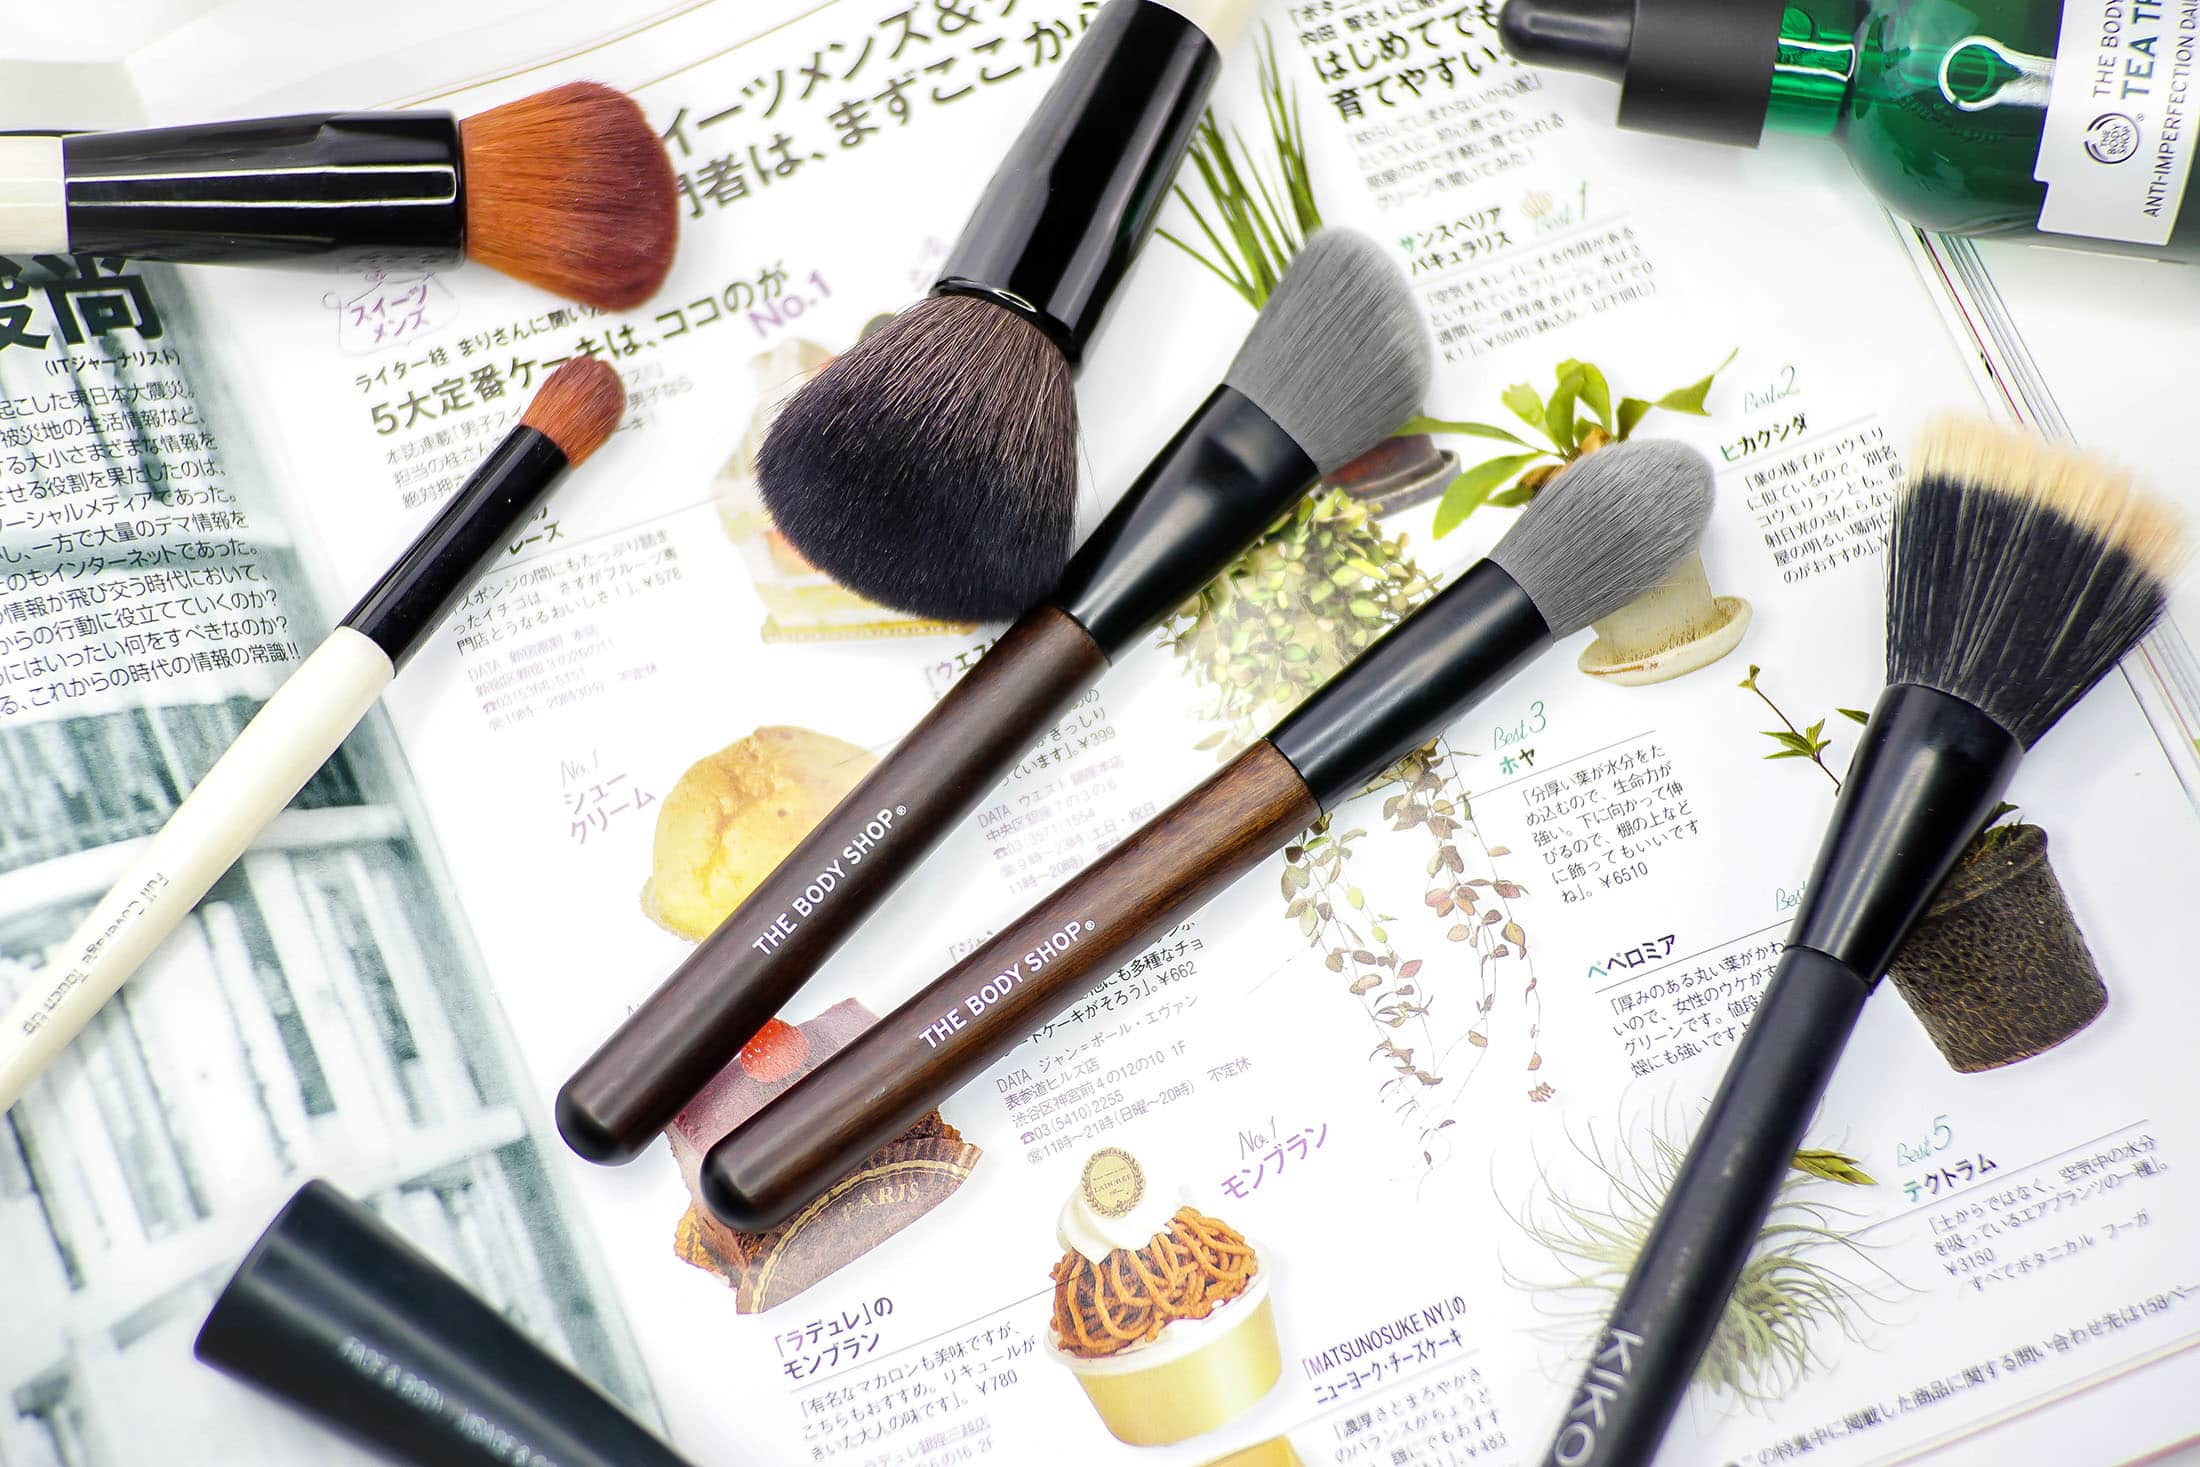 Get your man beat on with NEW Brushes from The Body Shop